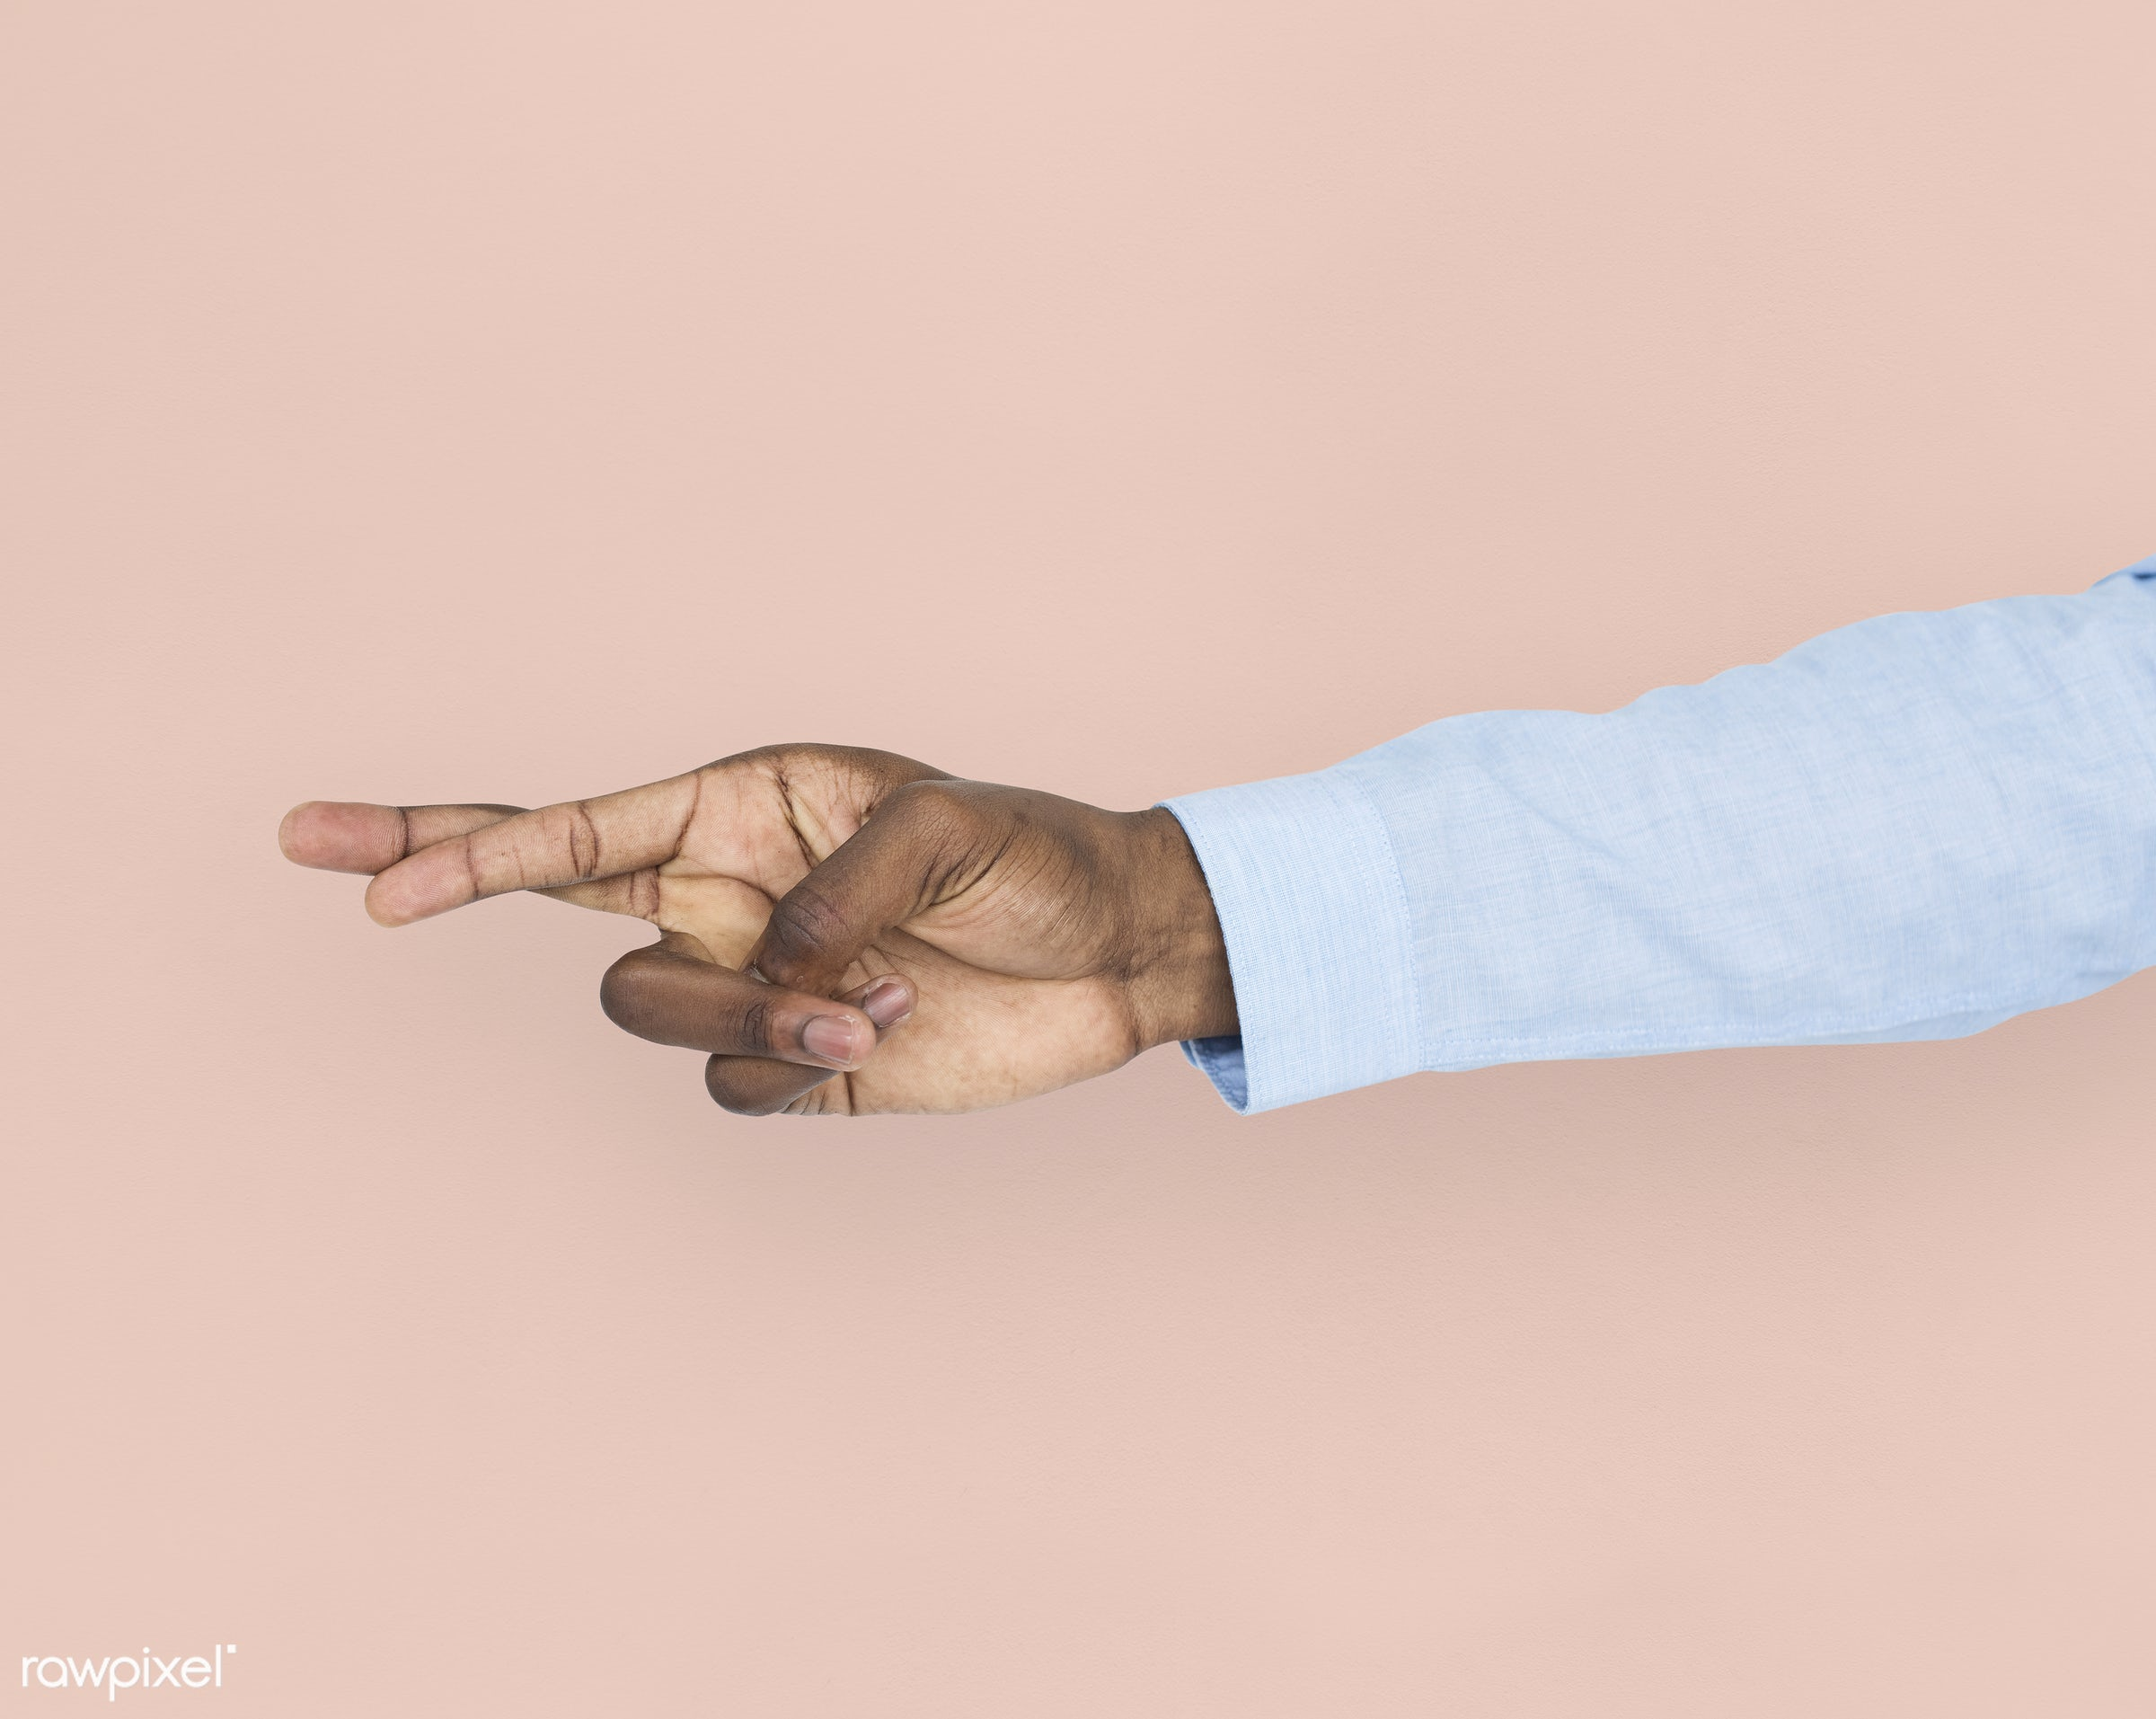 person, cut-out, race, hand, untruth, dishonesty, showing, isolated, african descent, luck, gesture, finger, fingers crossed...